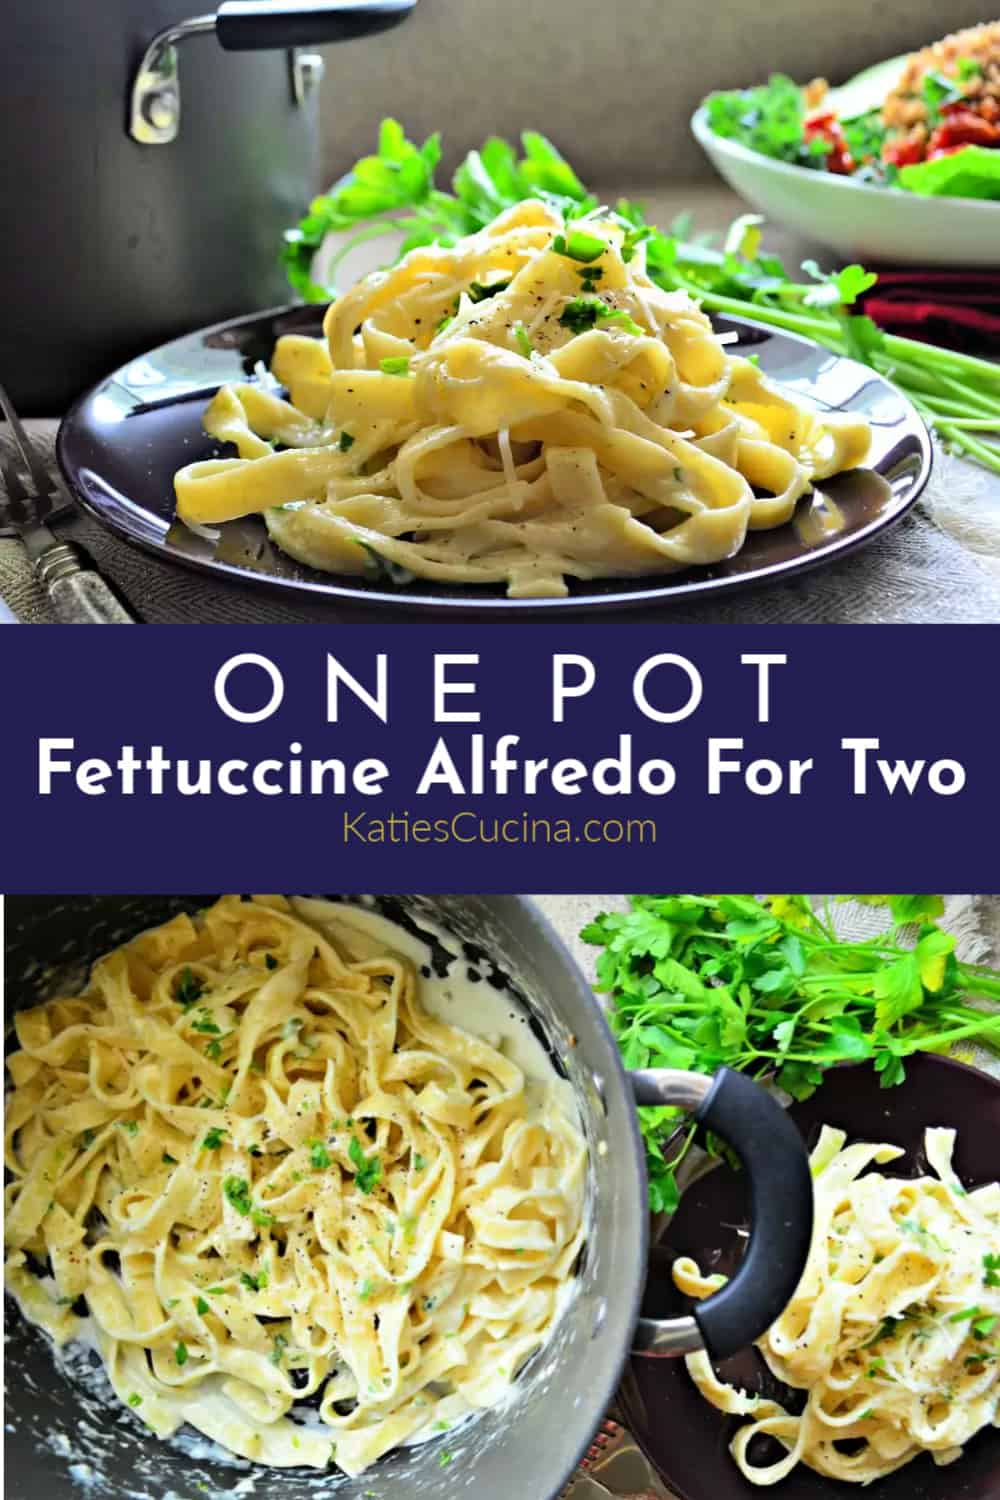 One Pot Fettuccine Alfredo For Two photo collage with text